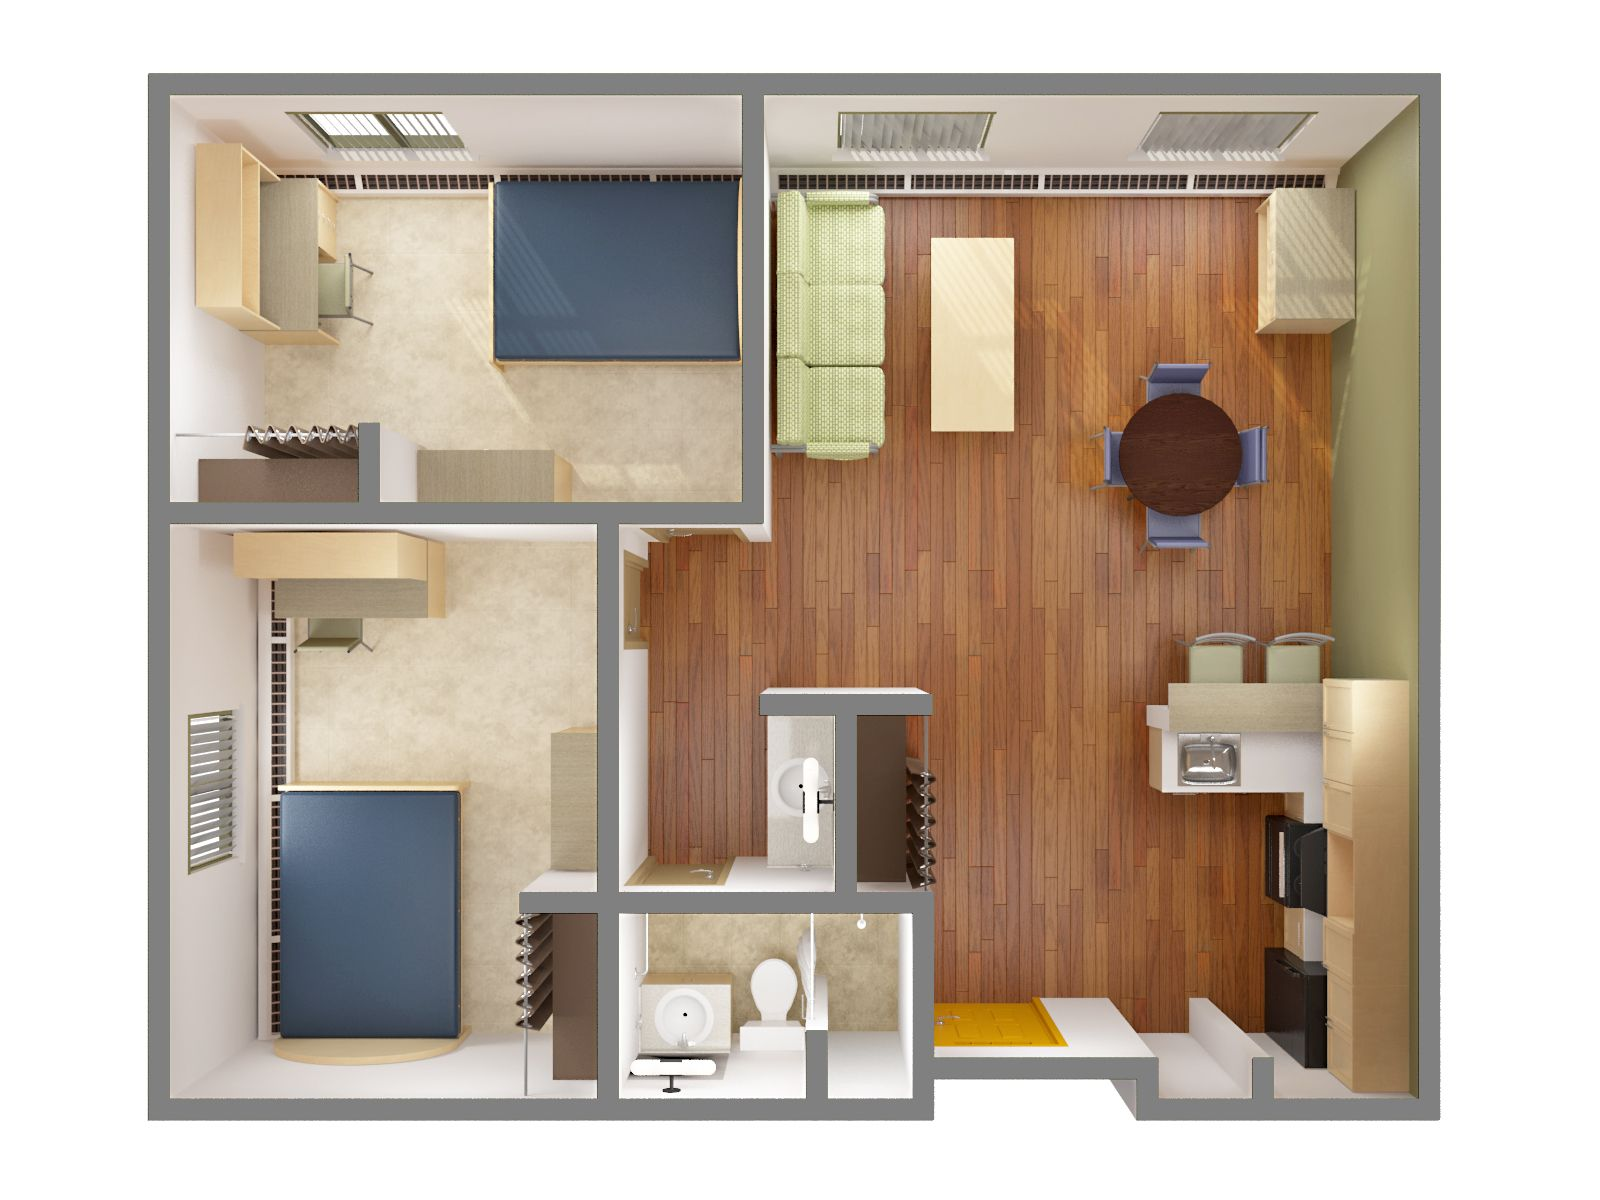 Graduate Residence Residence Services 2 Bedroom Apartment Apartments For Rent Cheap Bedroom Ideas